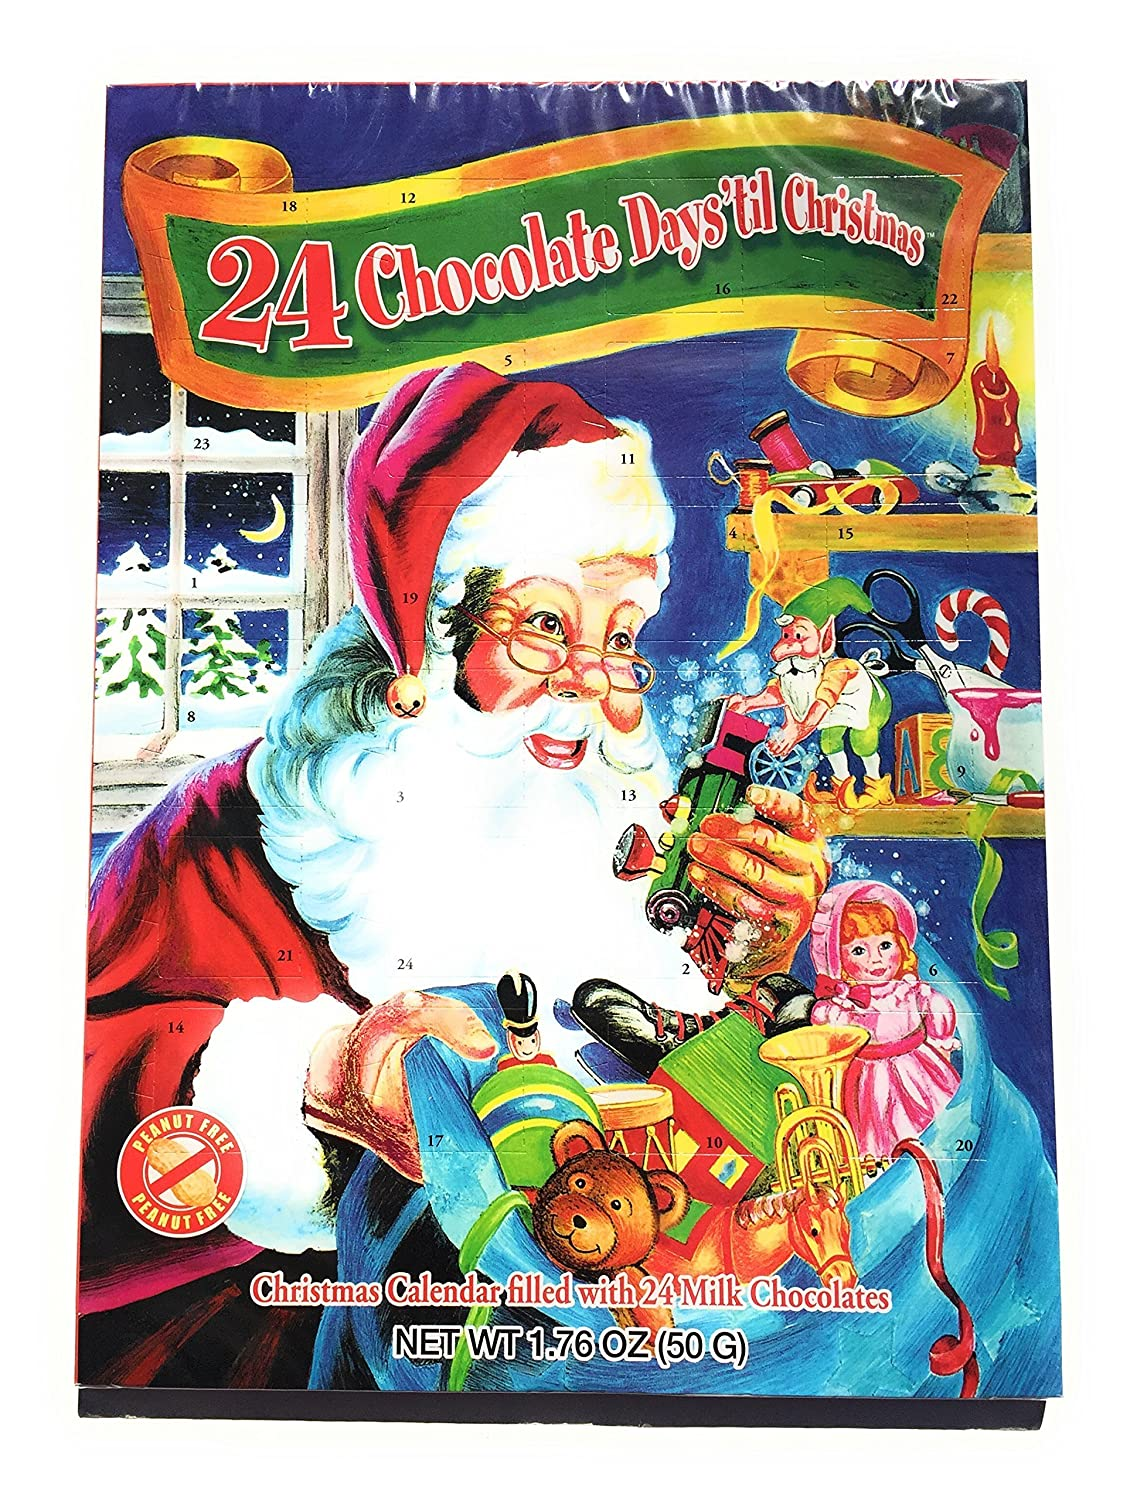 Alberts Advent Calender 24 Chocolates 1.76 oz Set of 3 Jean-Talon Chocolate